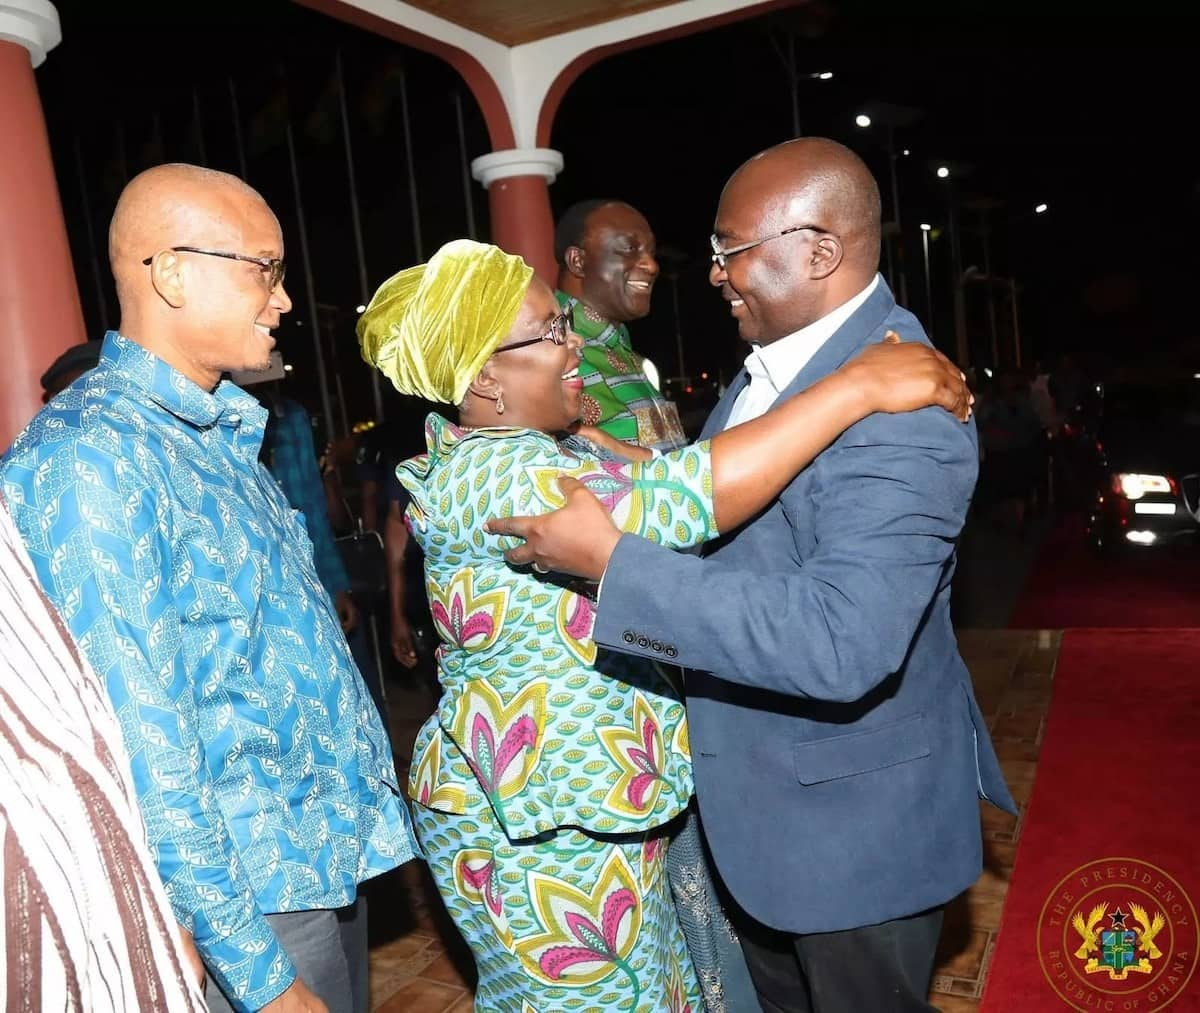 Dr Bawumia all smiles as he hugged Local Government Minister, Hajia Alima Mahama with Information Minister, Mustapha Hamid looking on